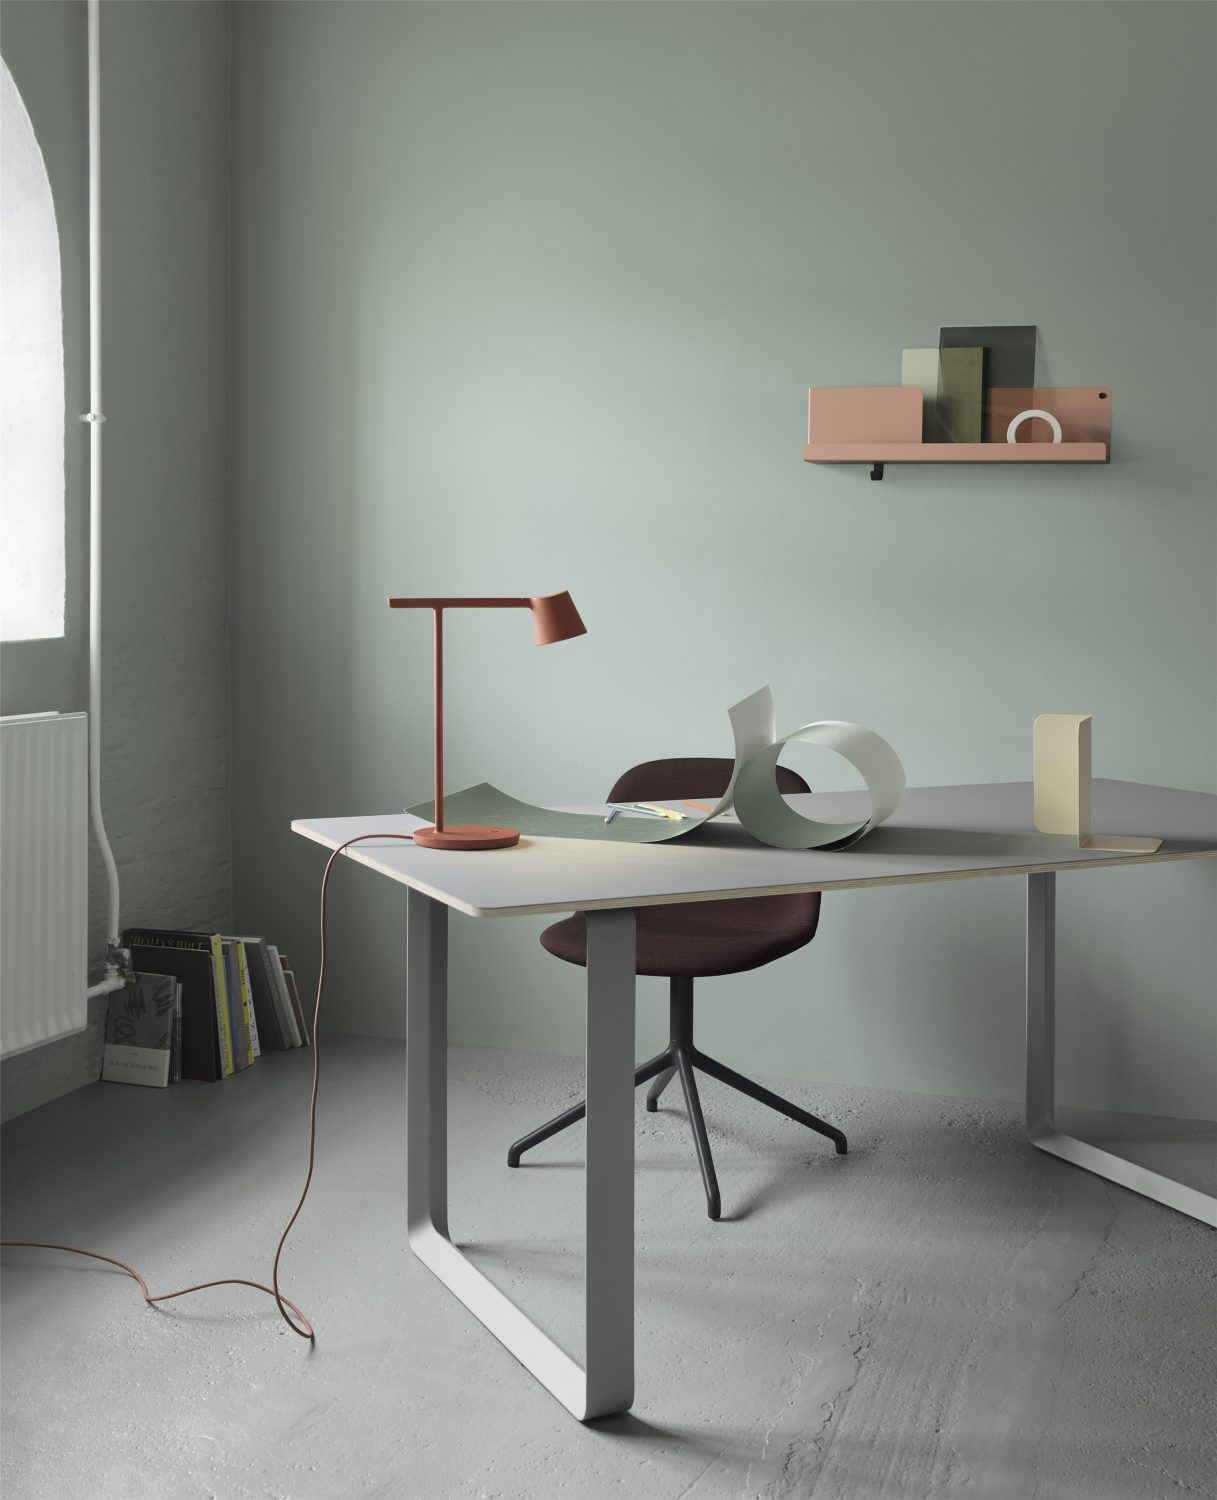 Tip-lamp-7070-table-compile-folded_(150)